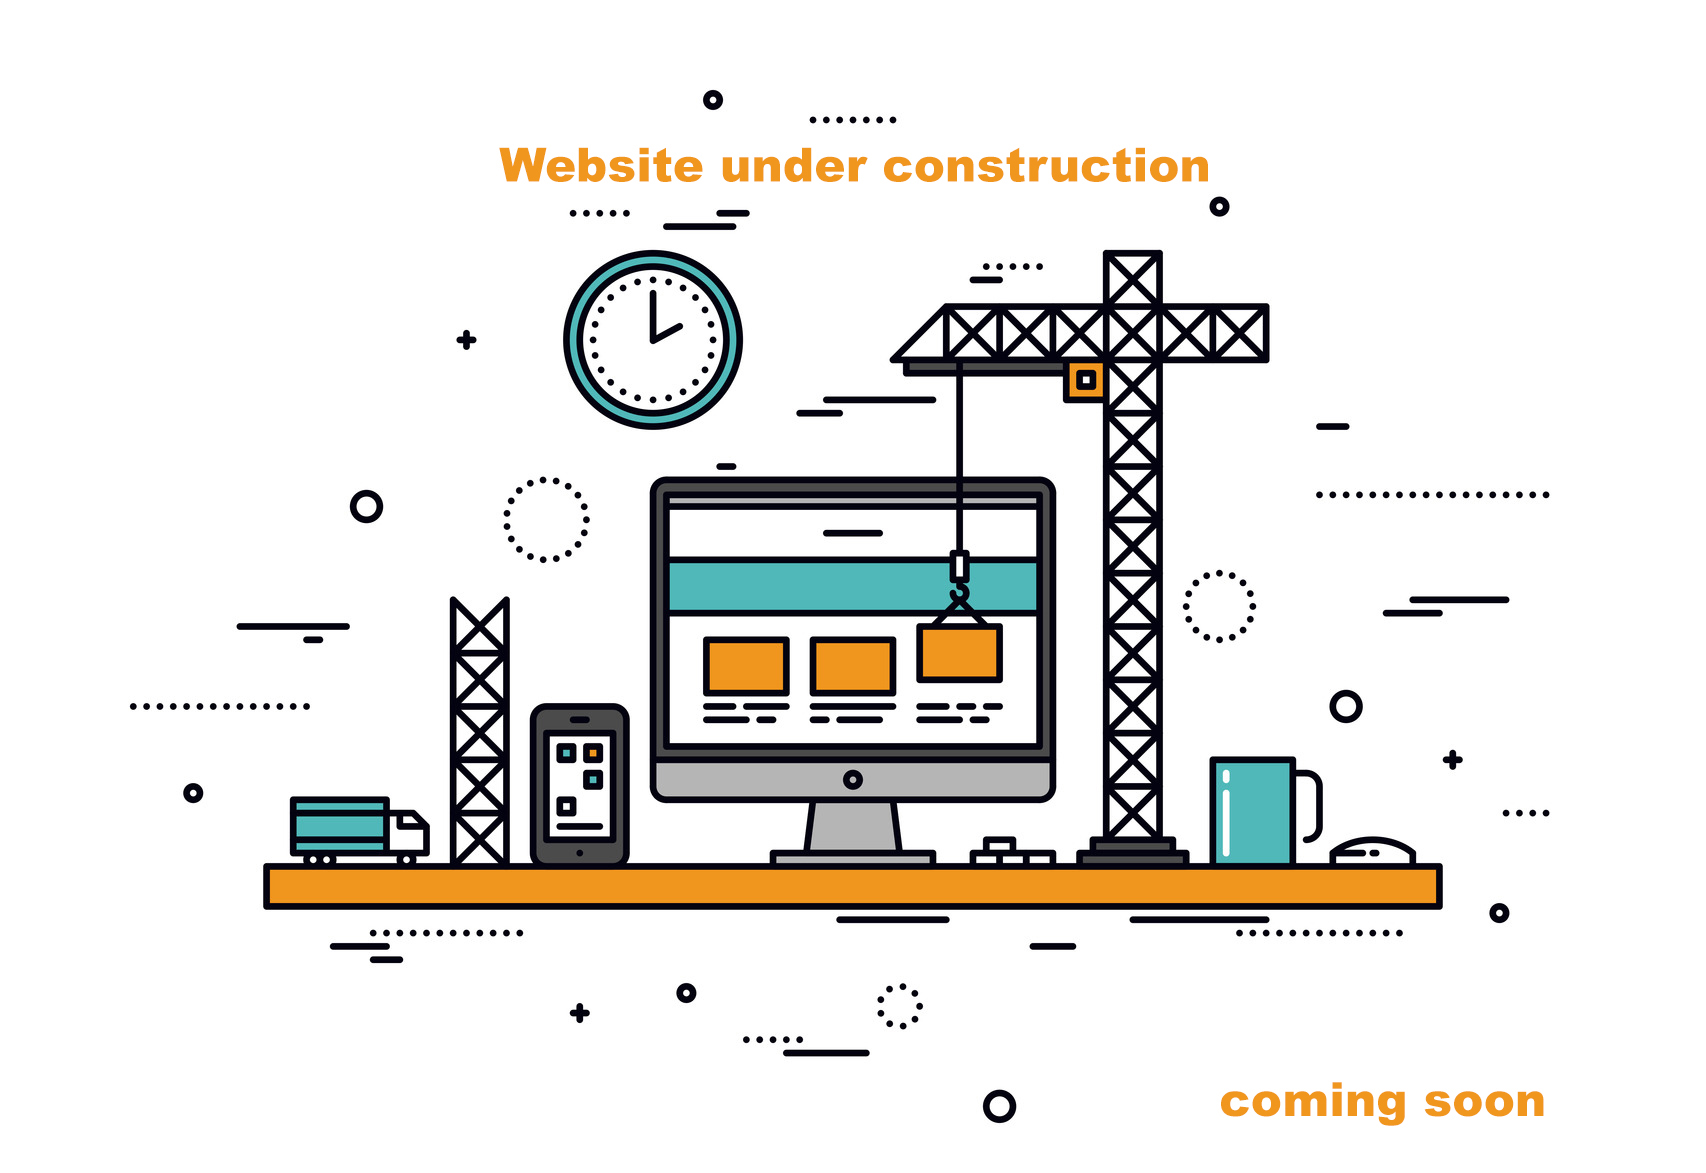 Thin line flat design of website under construction, web page building process, site form layout and menu buttons interface develop. Modern vector illustration concept, isolated on white background.